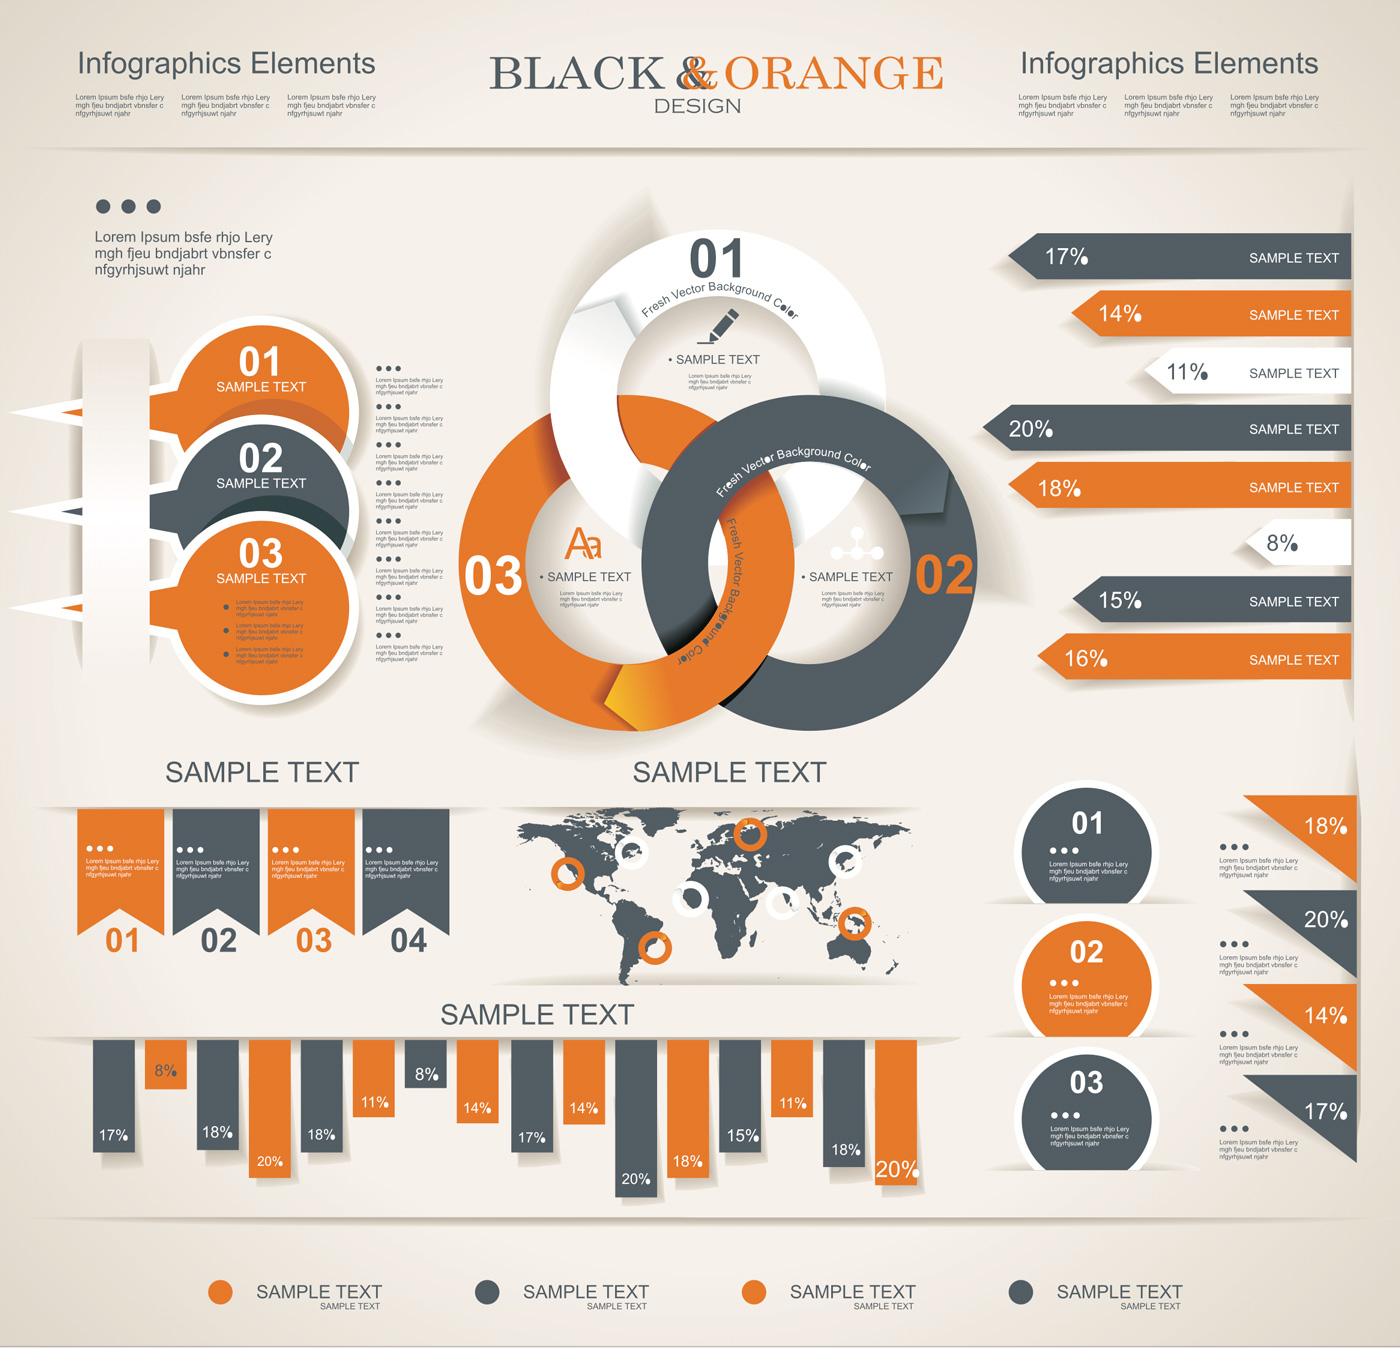 10 Free Blacks Of Infographics Images